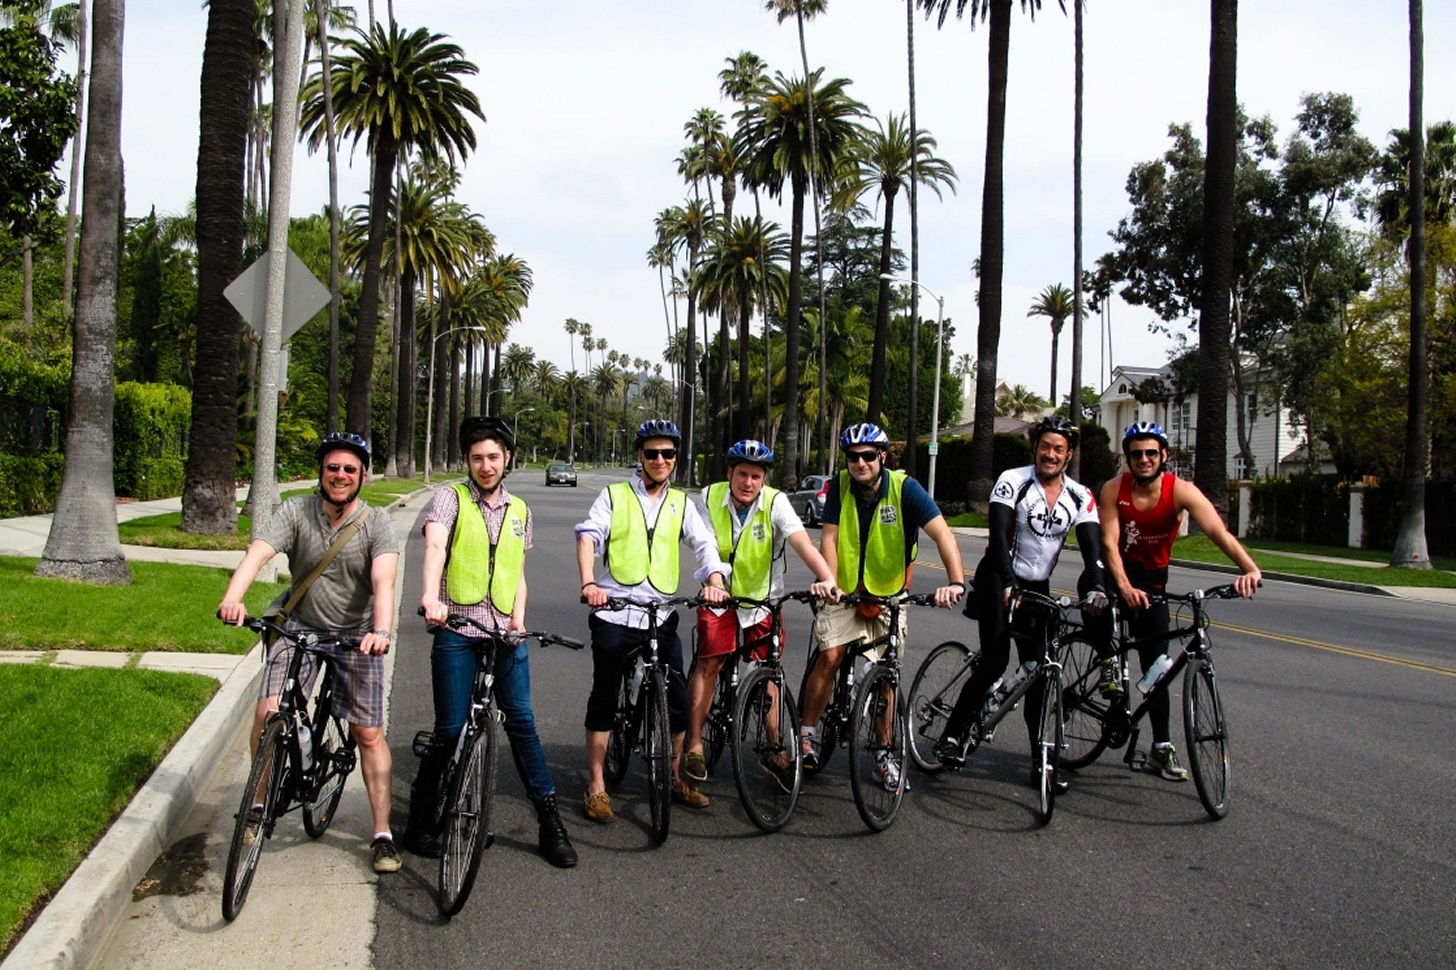 Fietstocht in Los Angeles